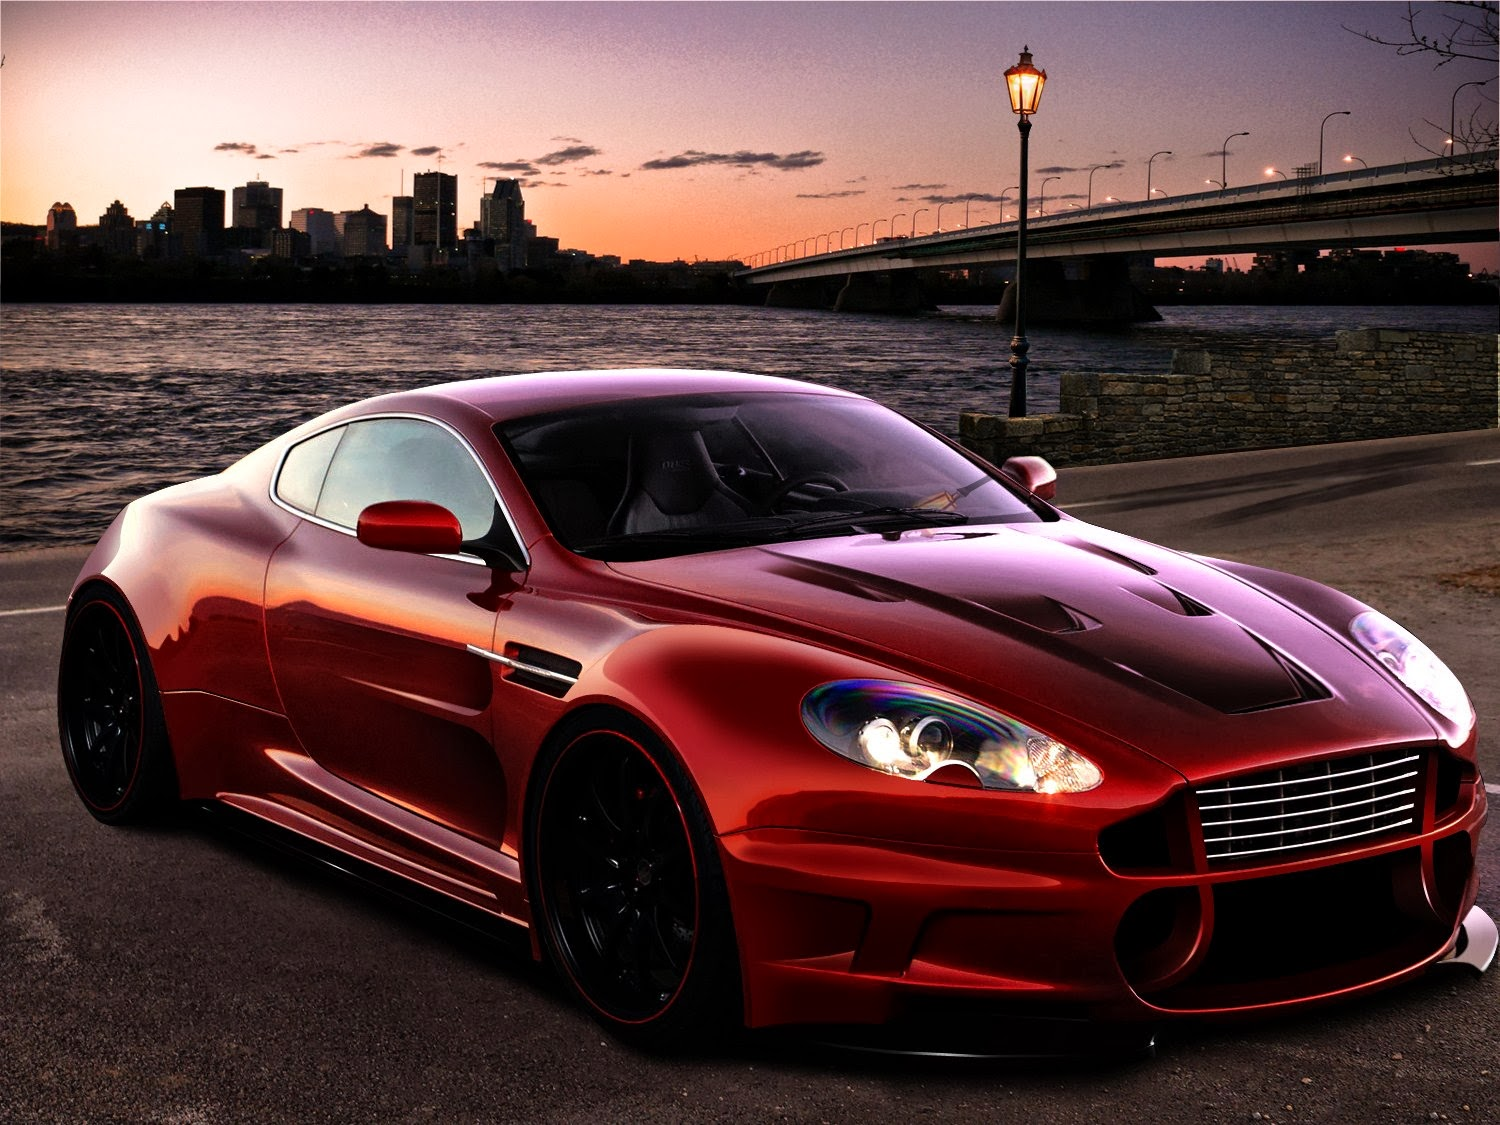 Aston Martin DBS Ultimate Edition Photos, Speed Acceleration